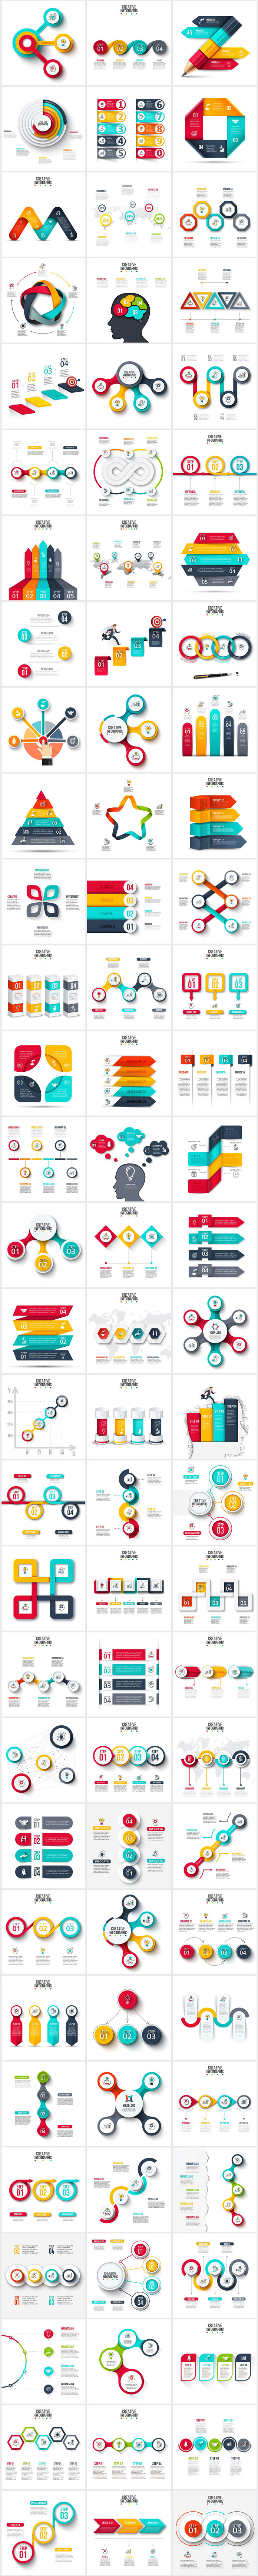 Creative infographic templates for Adobe Illustrator and Photoshop